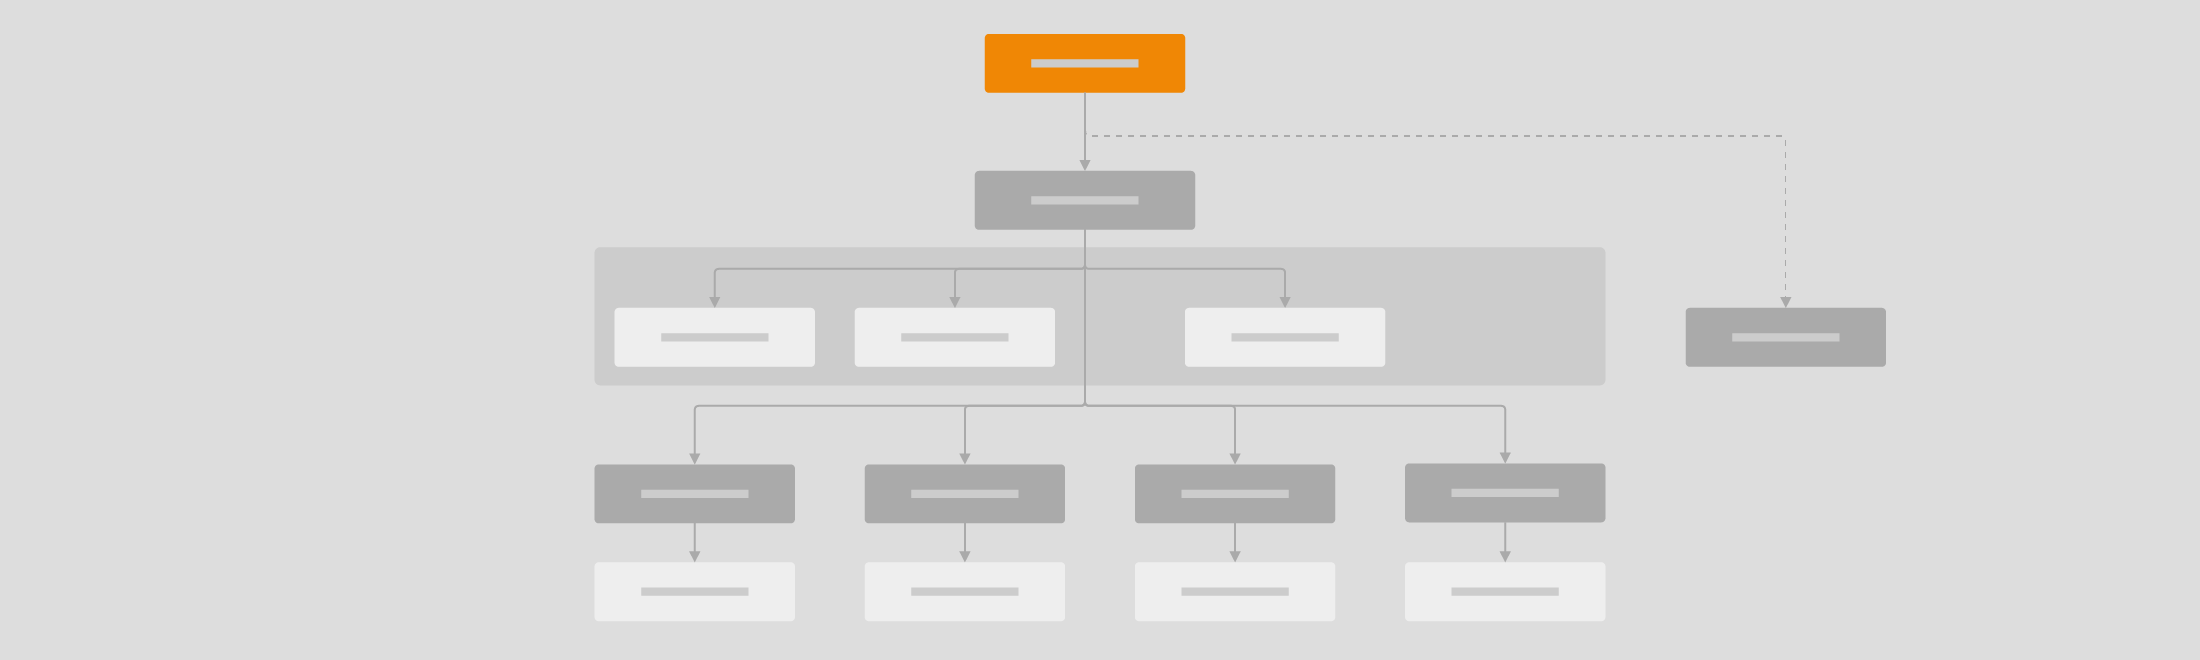 Work with tree diagrams like organization charts and mind maps in draw.io